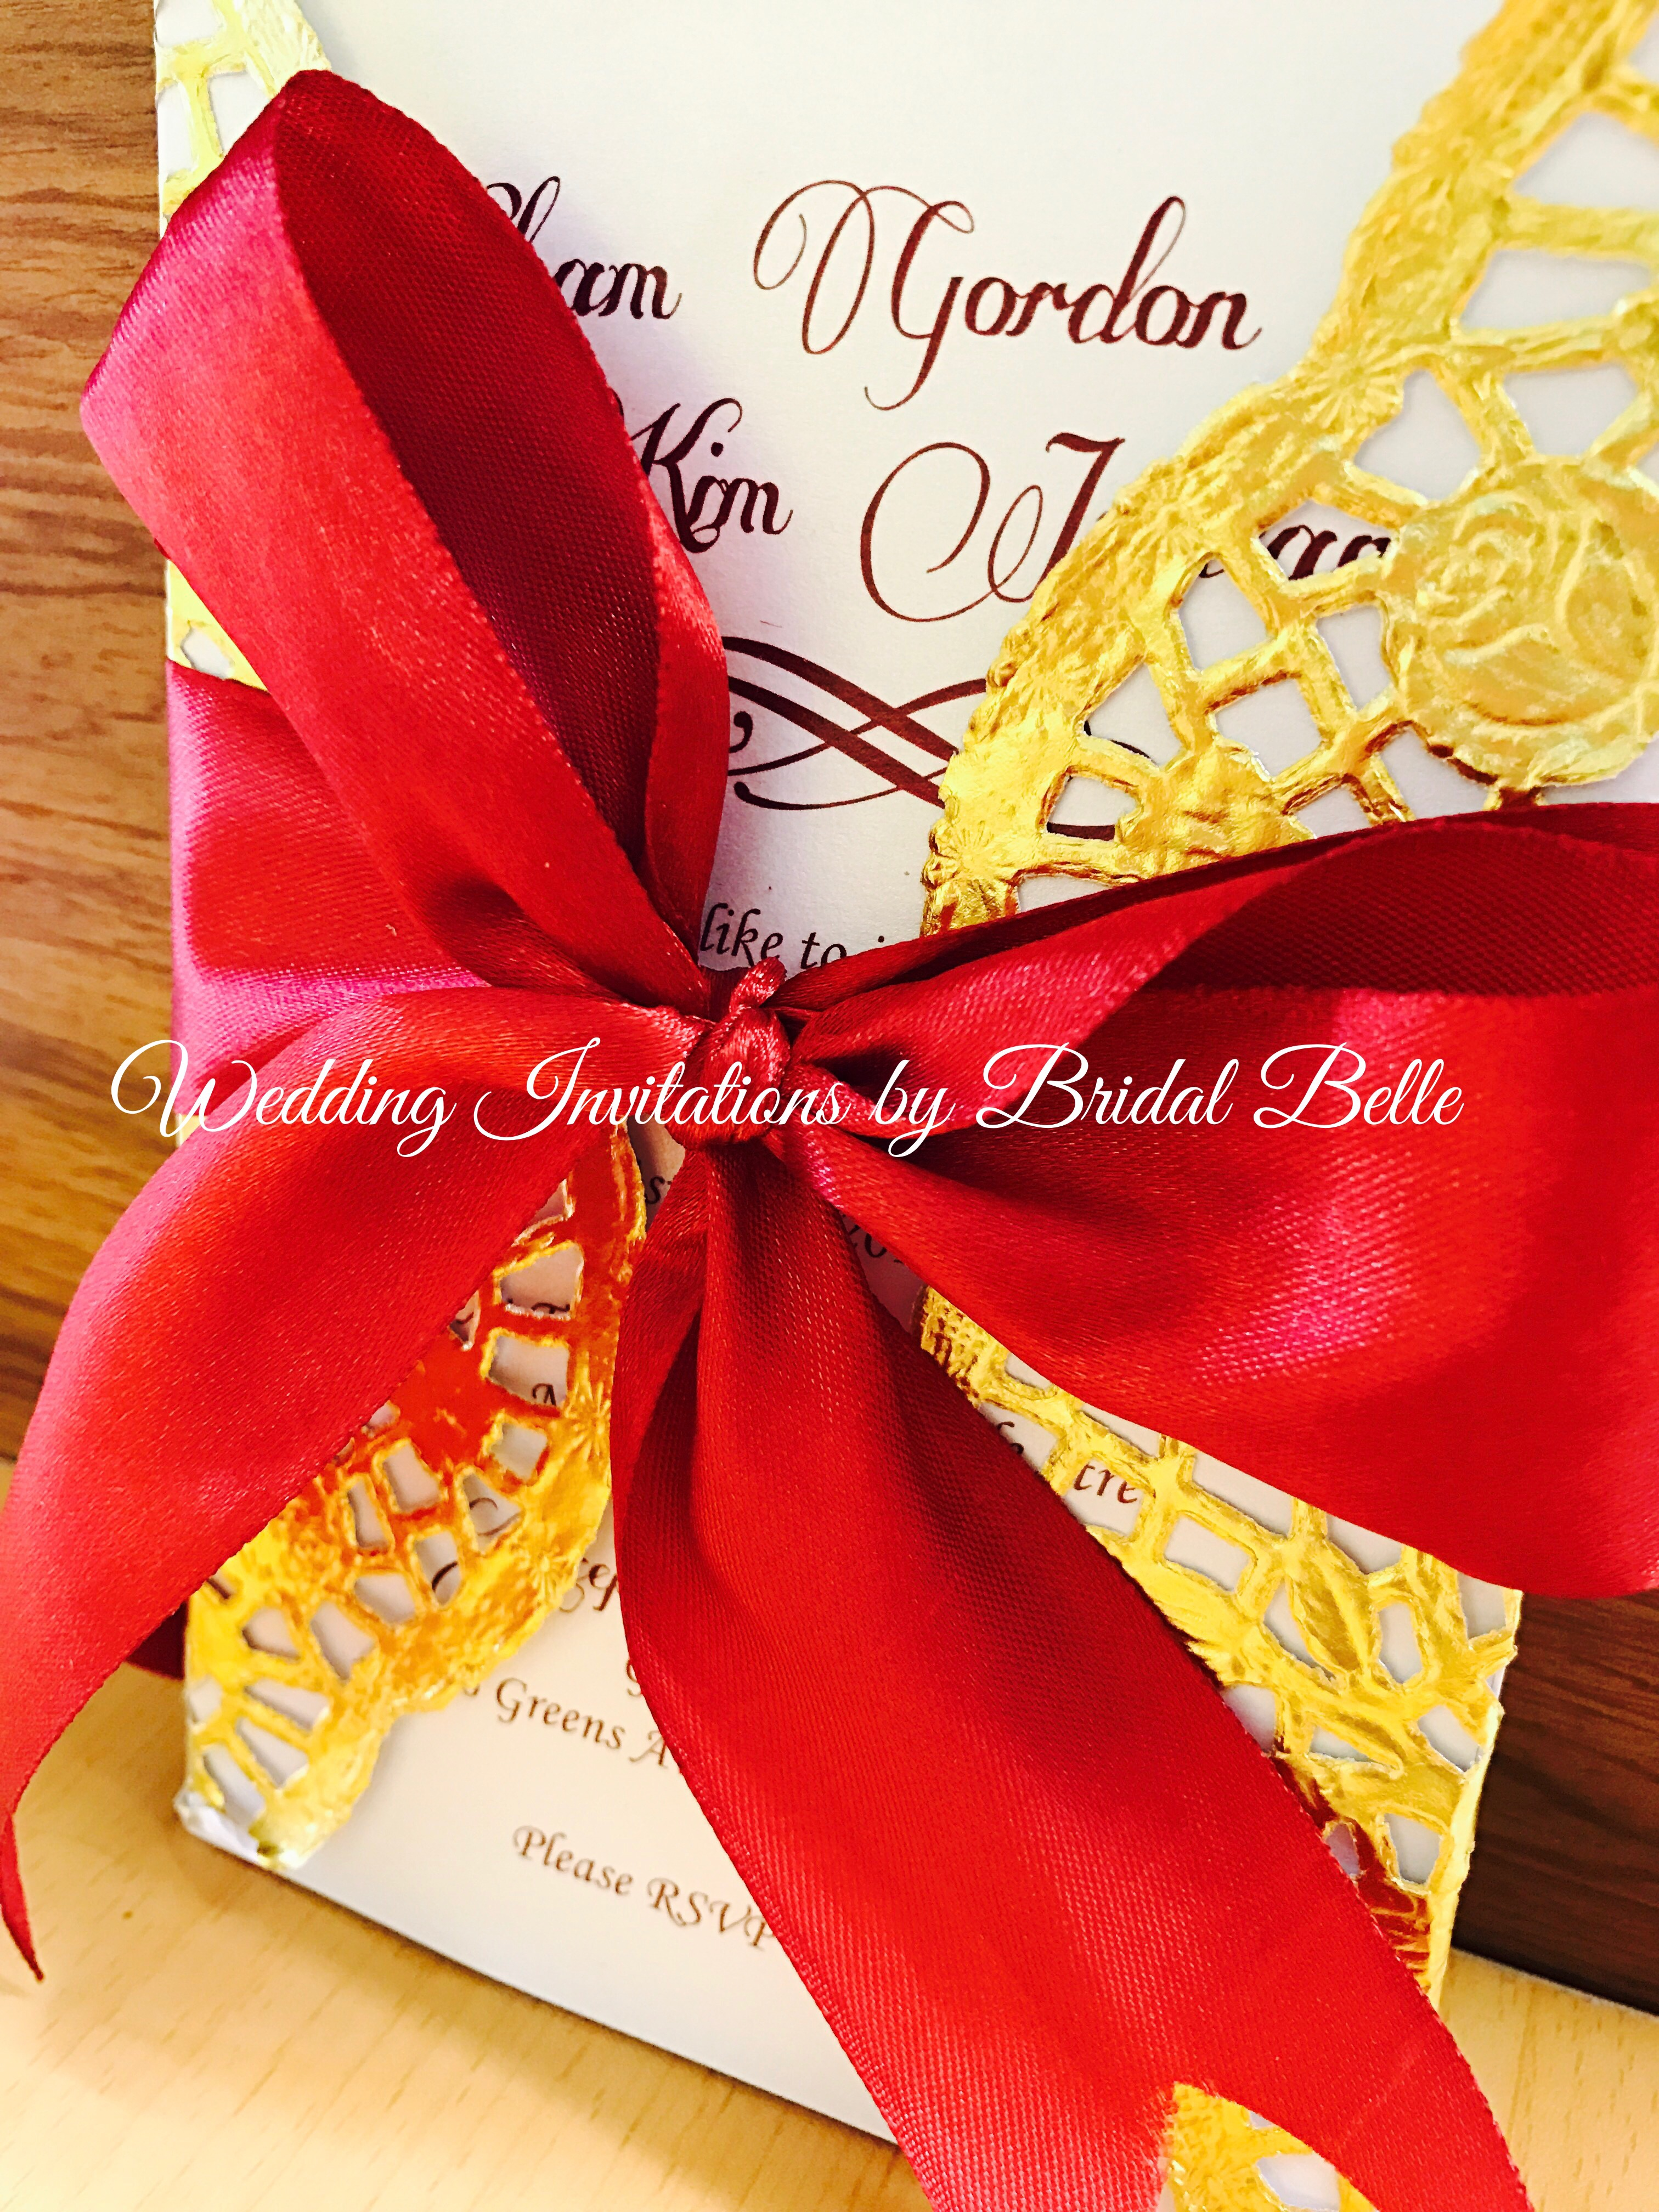 Doily Wrapped Wedding Invitations – Wedding Invitations by Bridal Belle